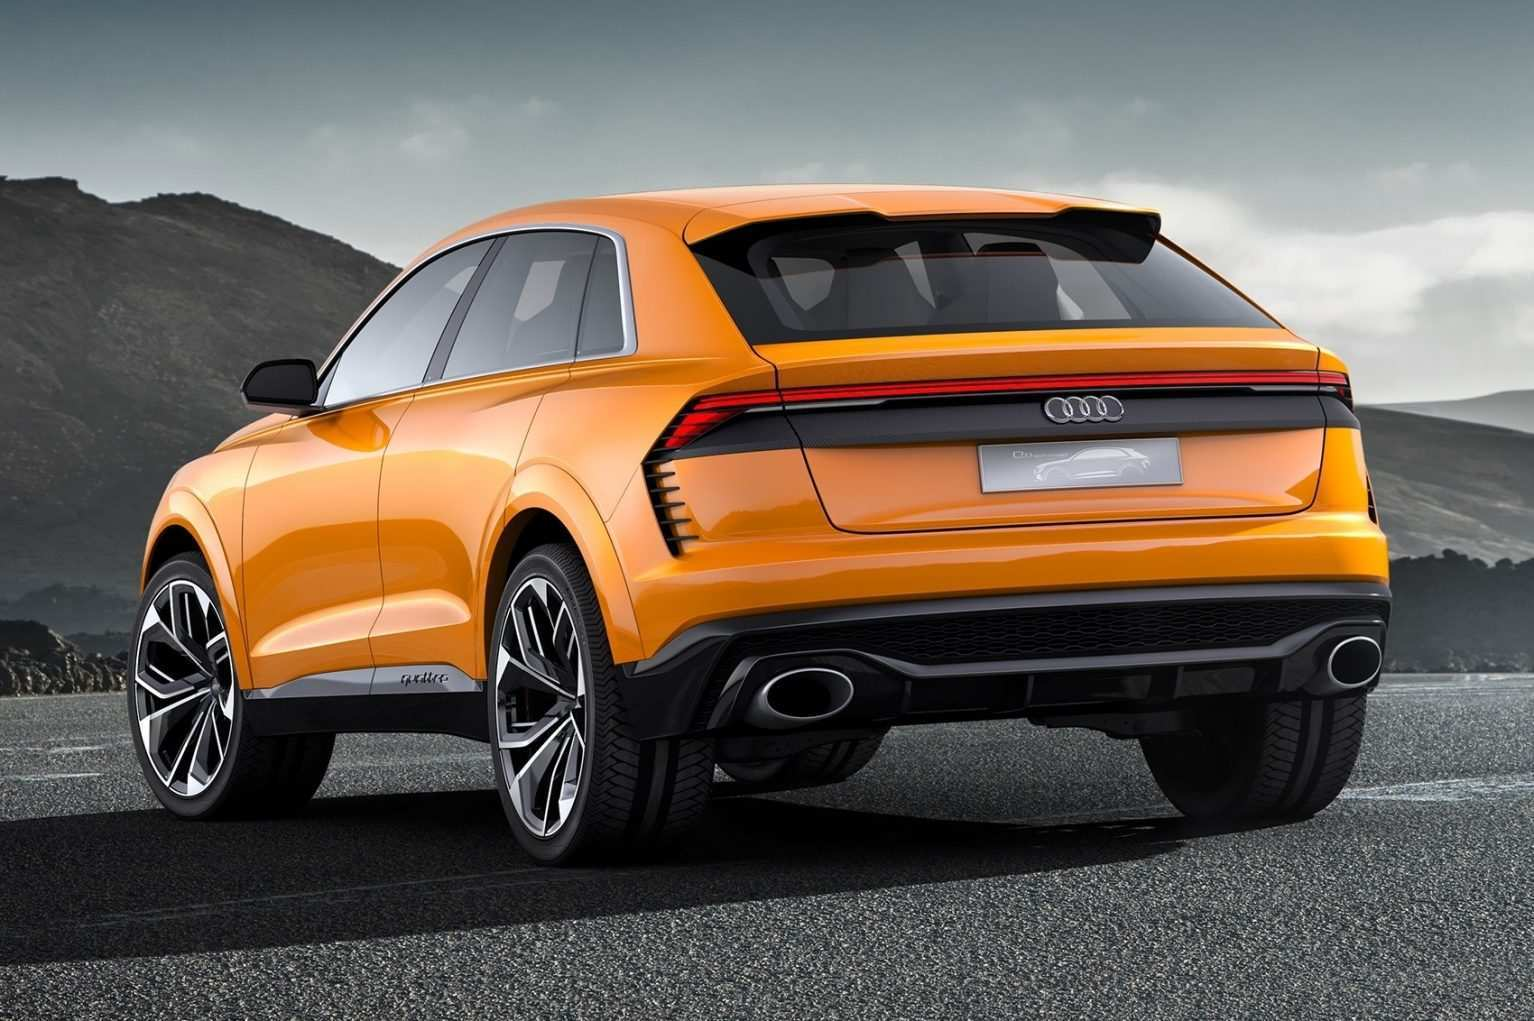 48 The 2020 Audi Q8 Picture for 2020 Audi Q8